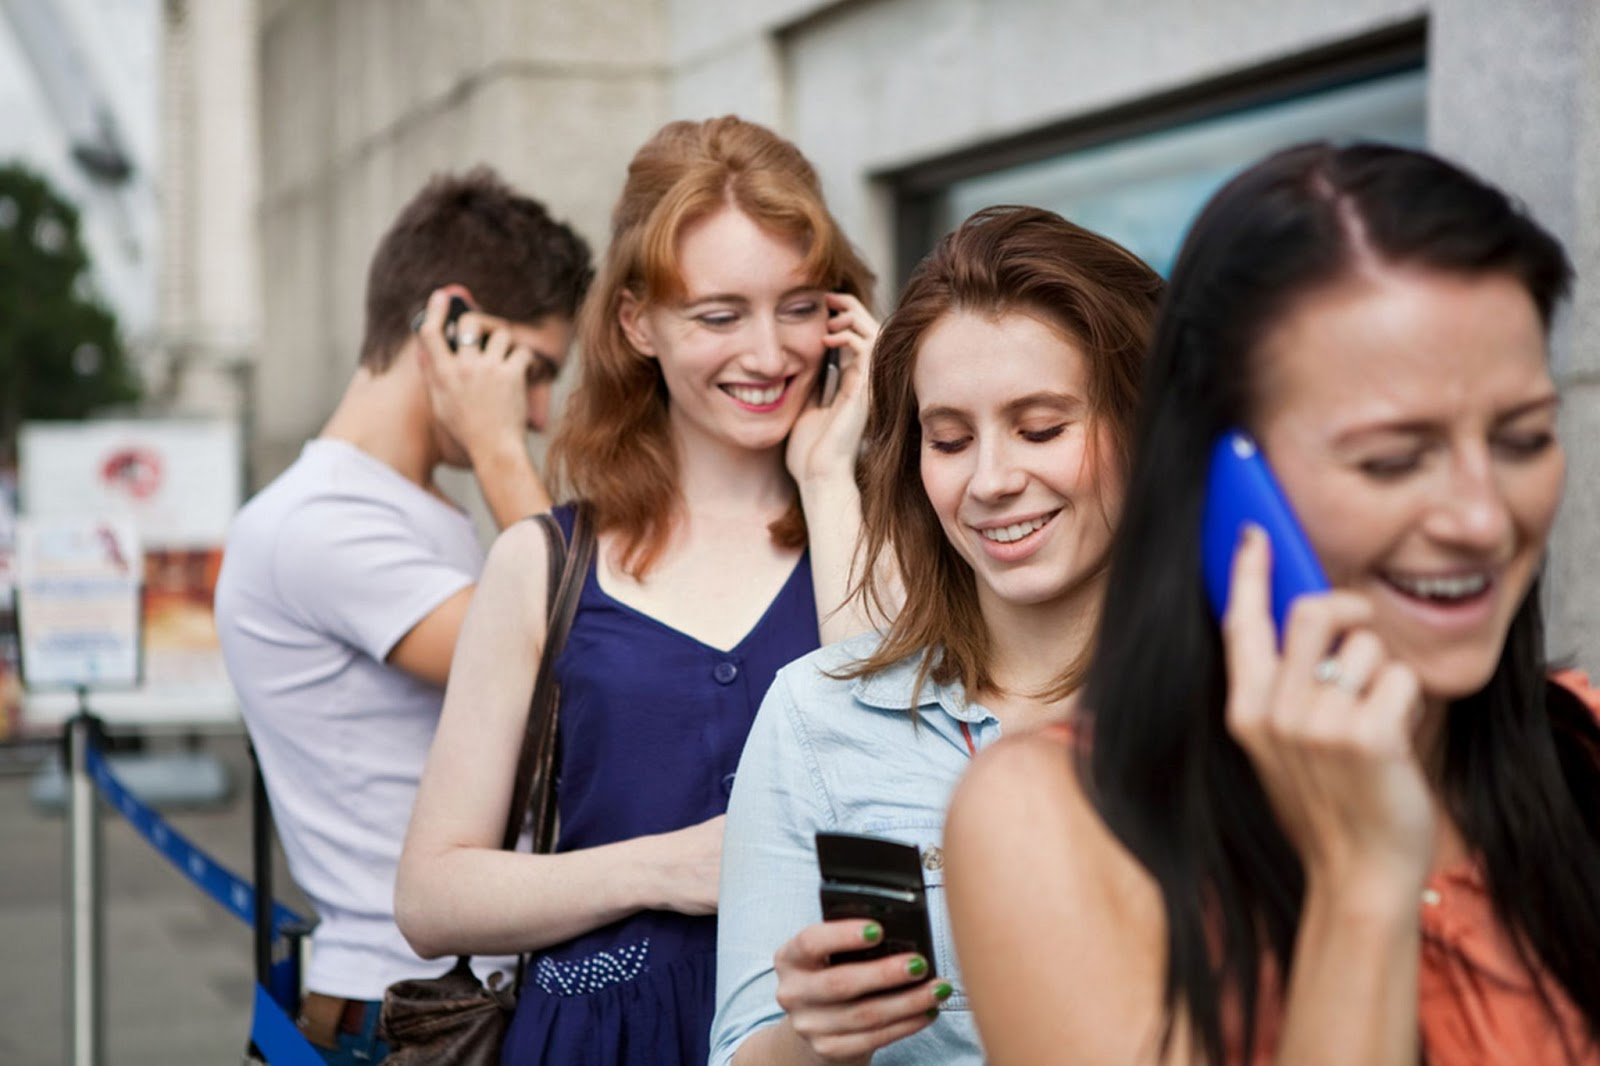 Young+men+and+women+using+mobile+phones